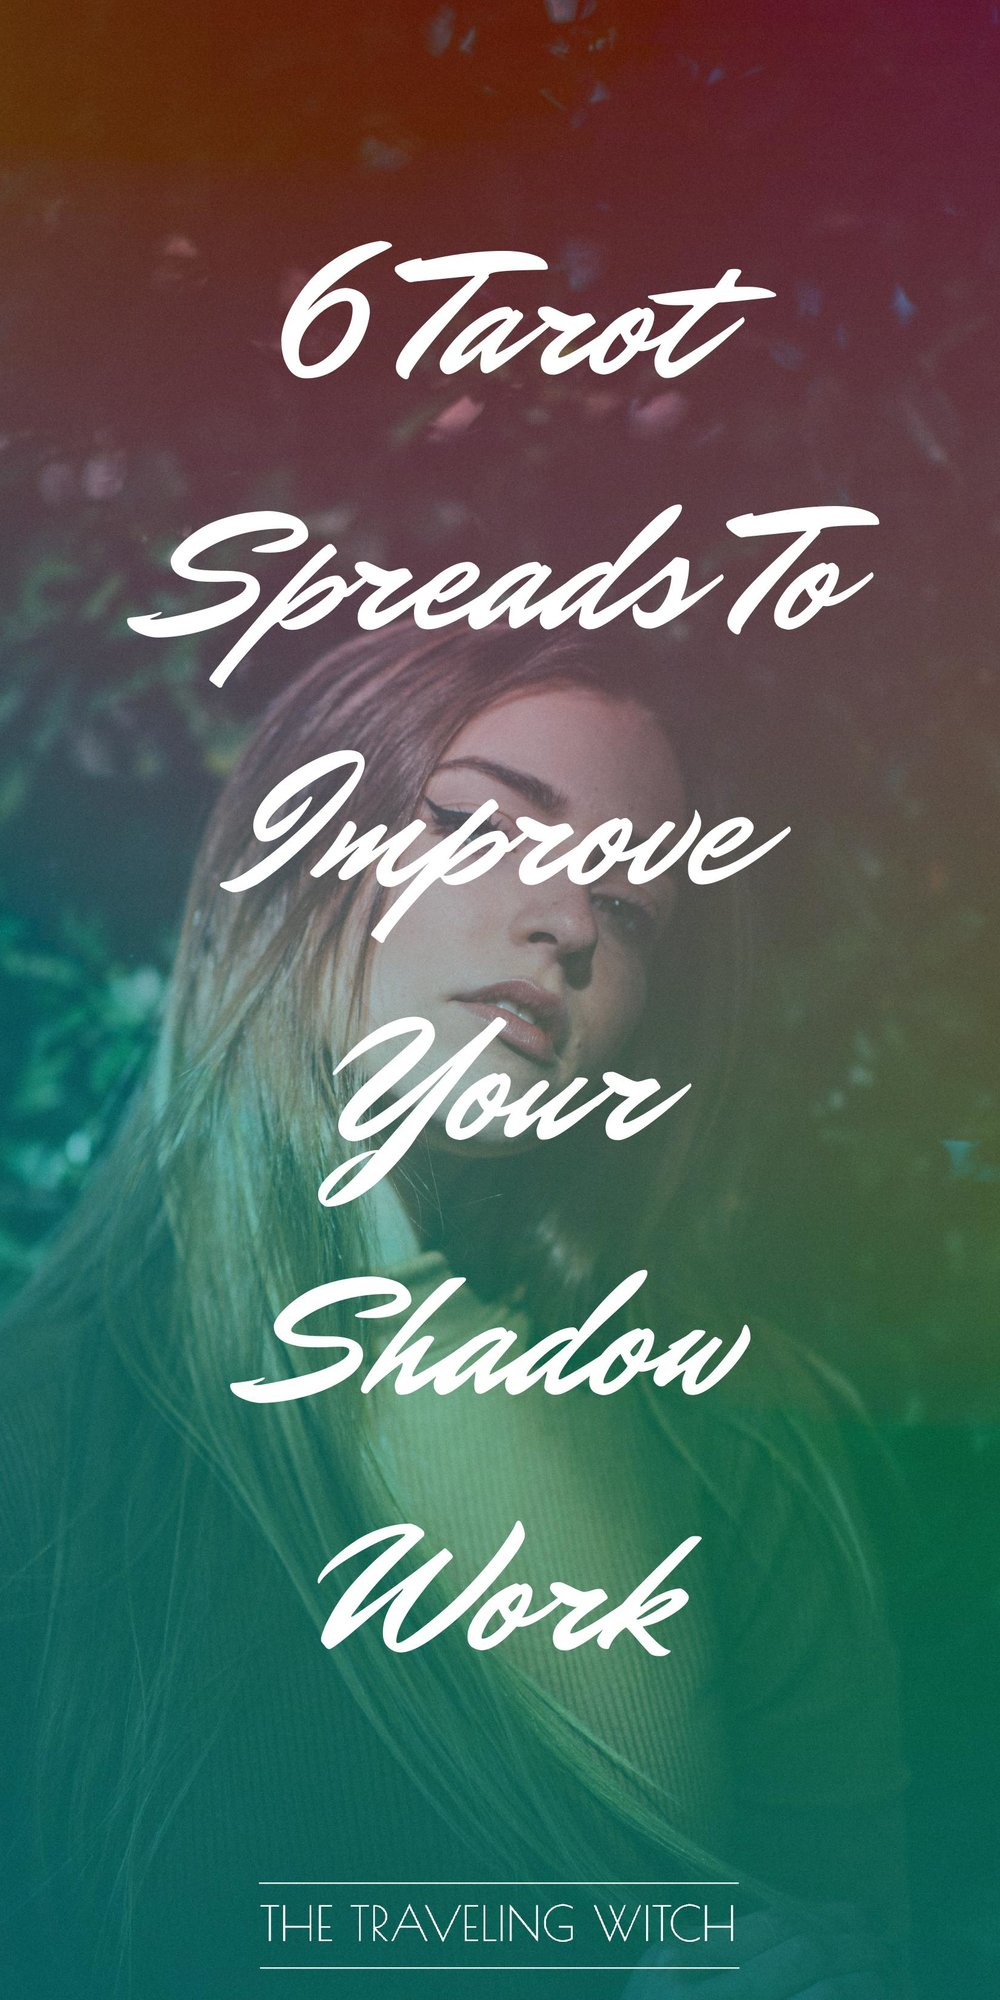 6 Tarot Spreads To Improve Your Shadow Work by The Traveling Witch